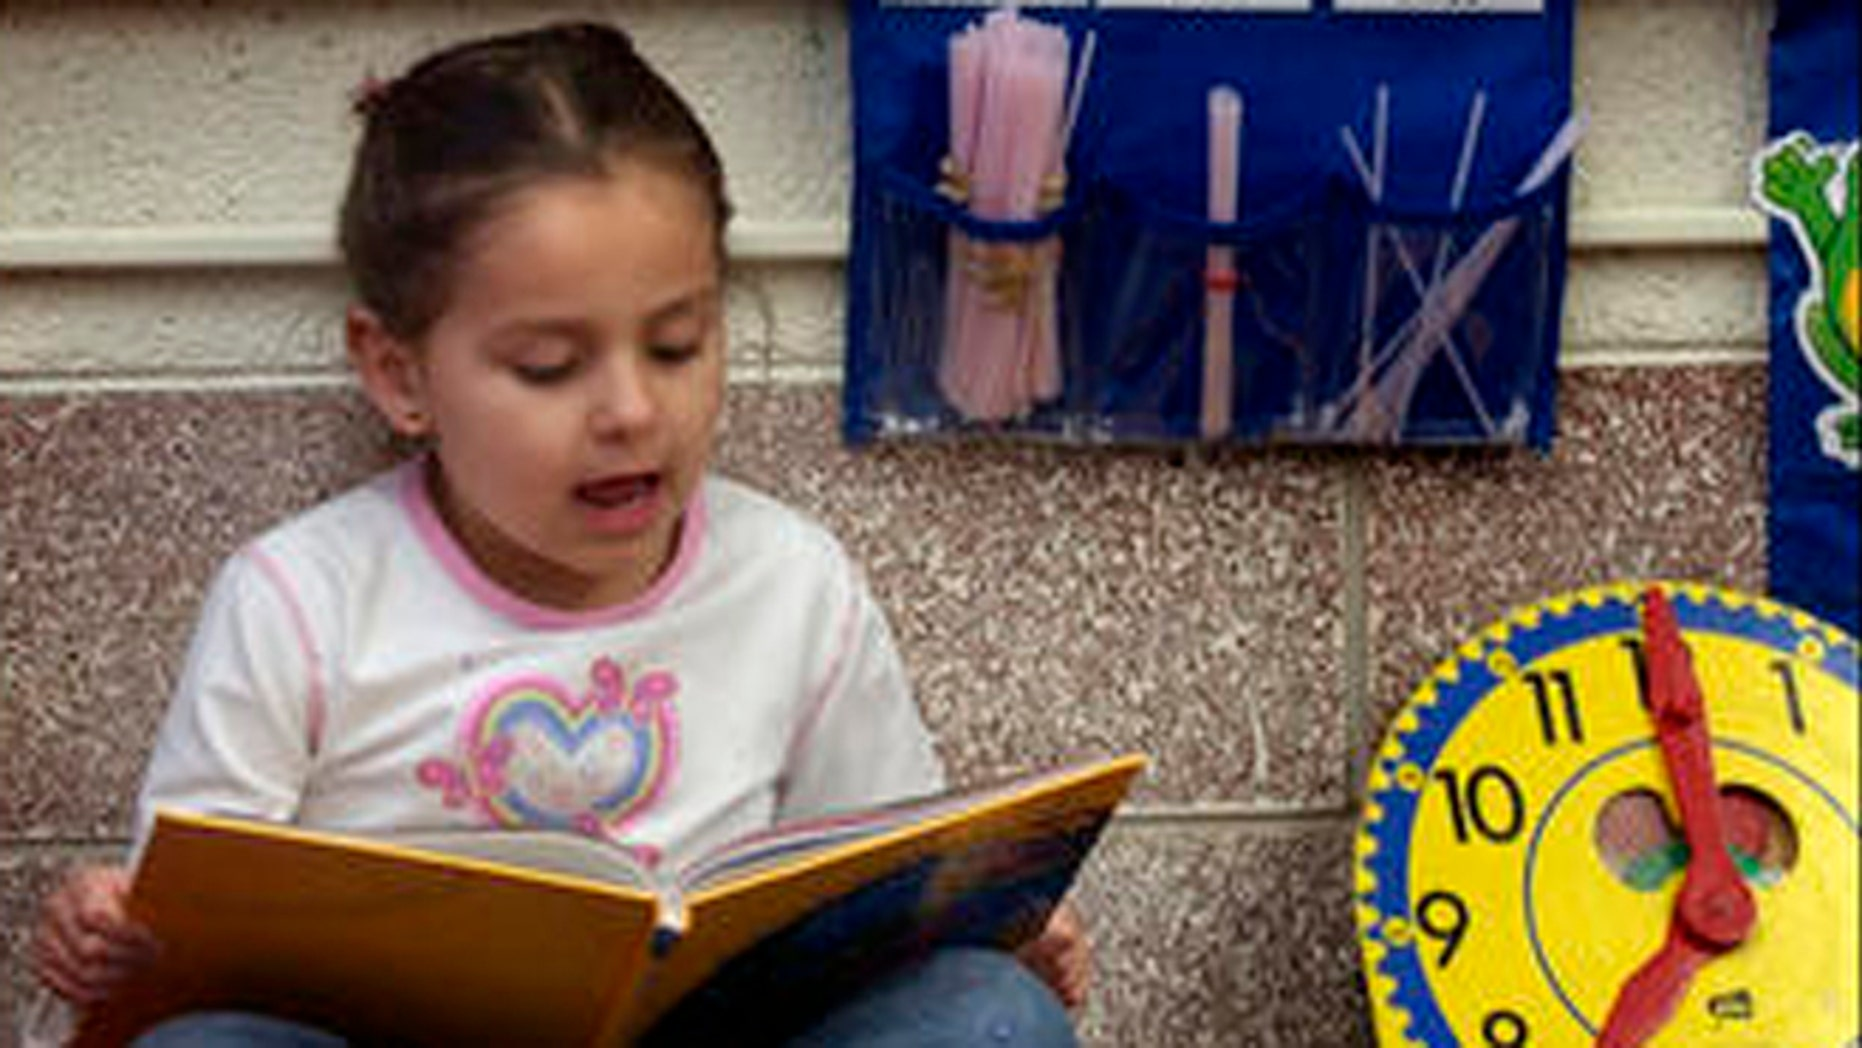 Kasandra Herrera, 6, reads a book in Spanish in Bianca Alvarez's dual language first grade classroom at Northwest Elementary School in Dodge City, Kan. Feb. 22, 2005. (AP Photo/Charlie Riedel)